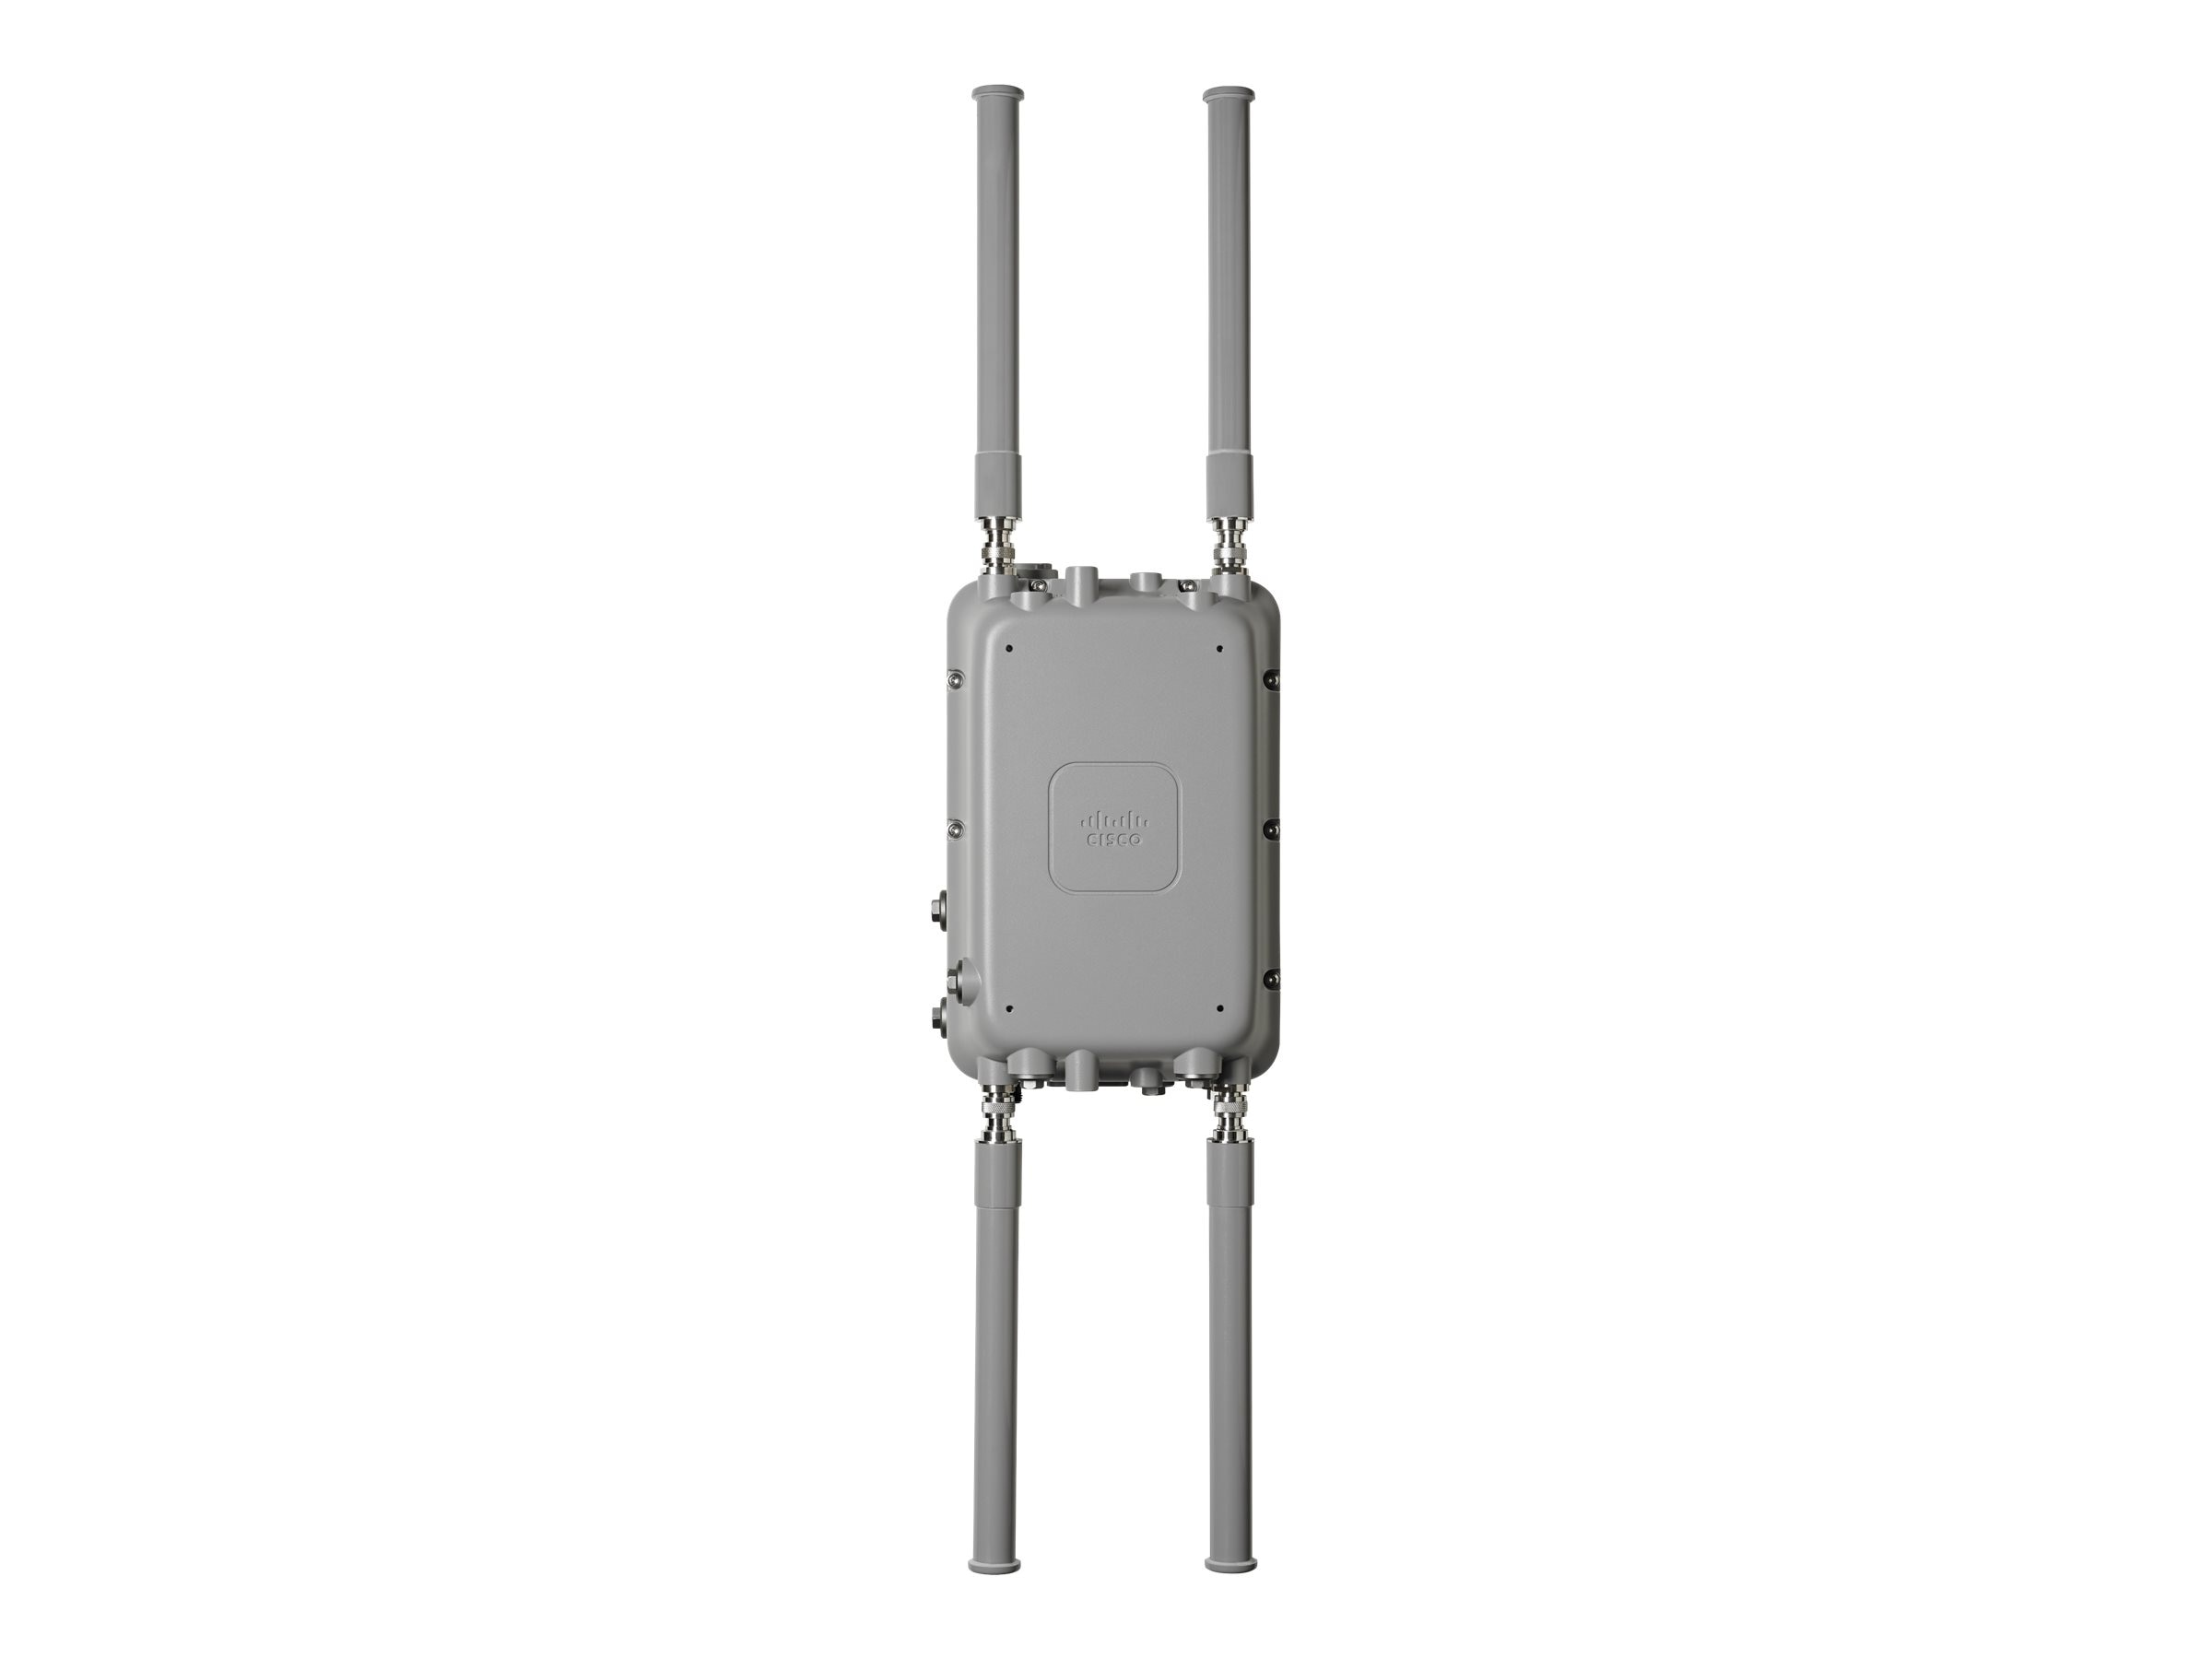 Cisco AIR-AP1572EC1-T-K9 Image 3